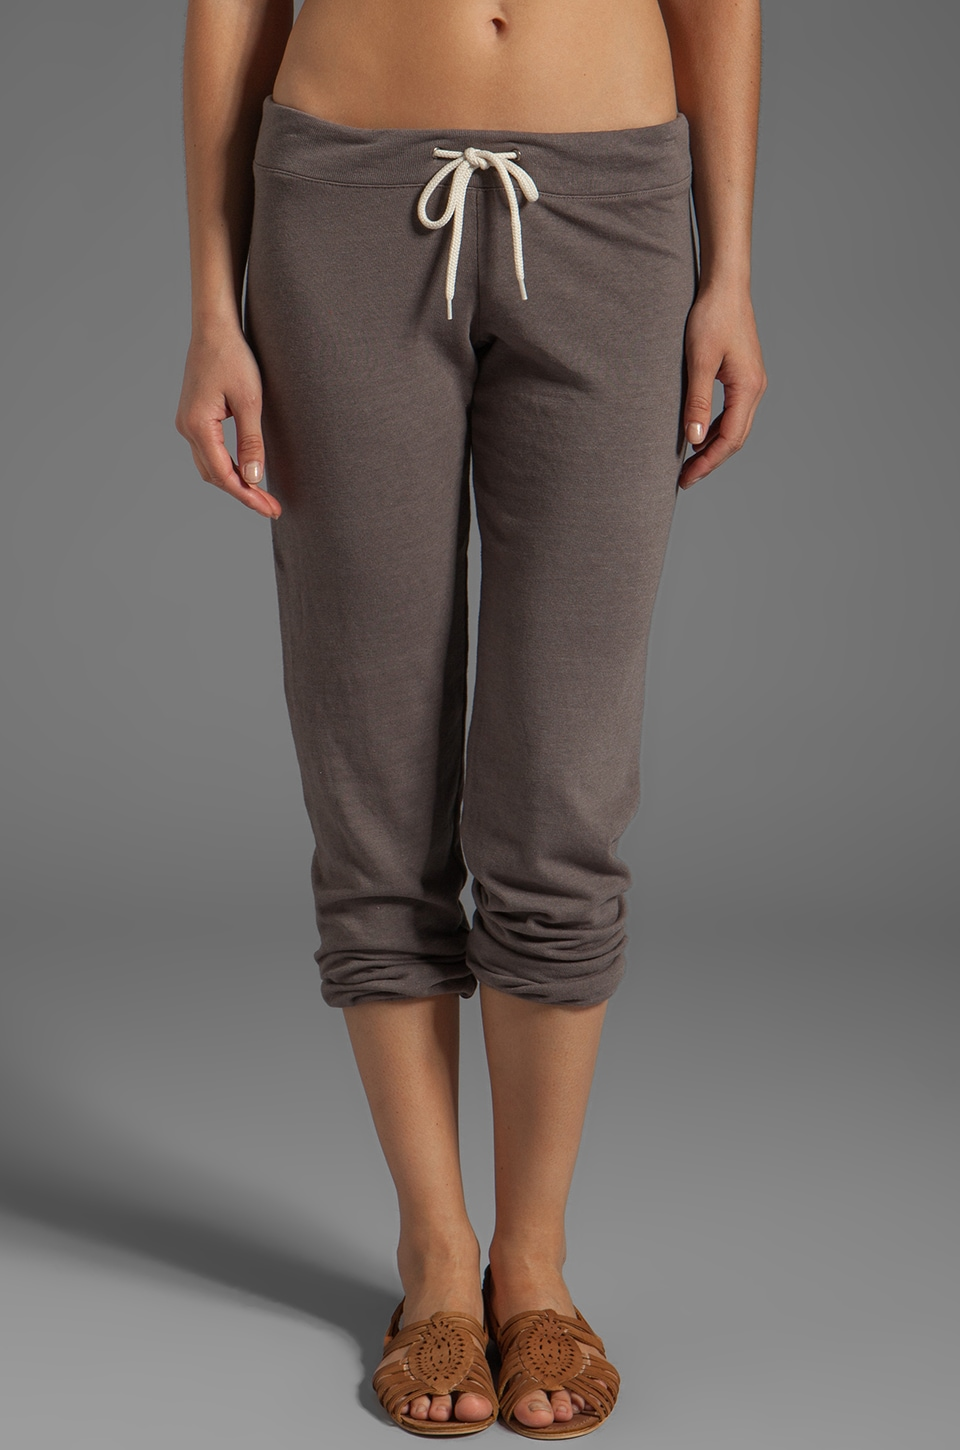 MONROW Vintage White Fleece Sweats in Dusk